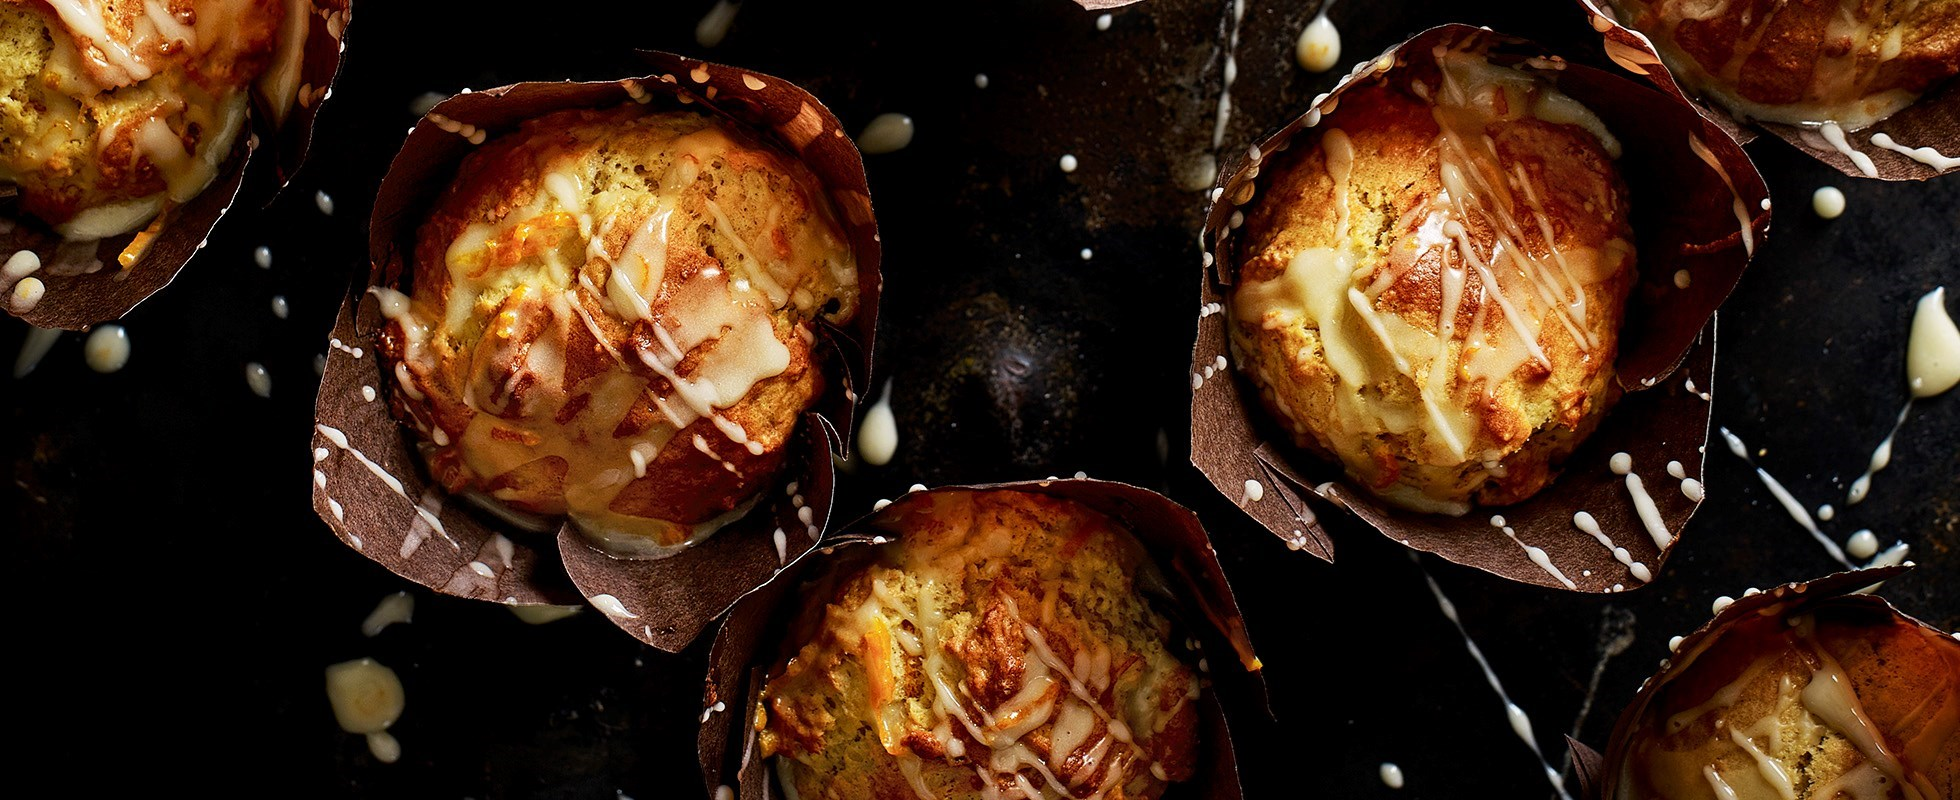 tangerine and marzinpan muffins